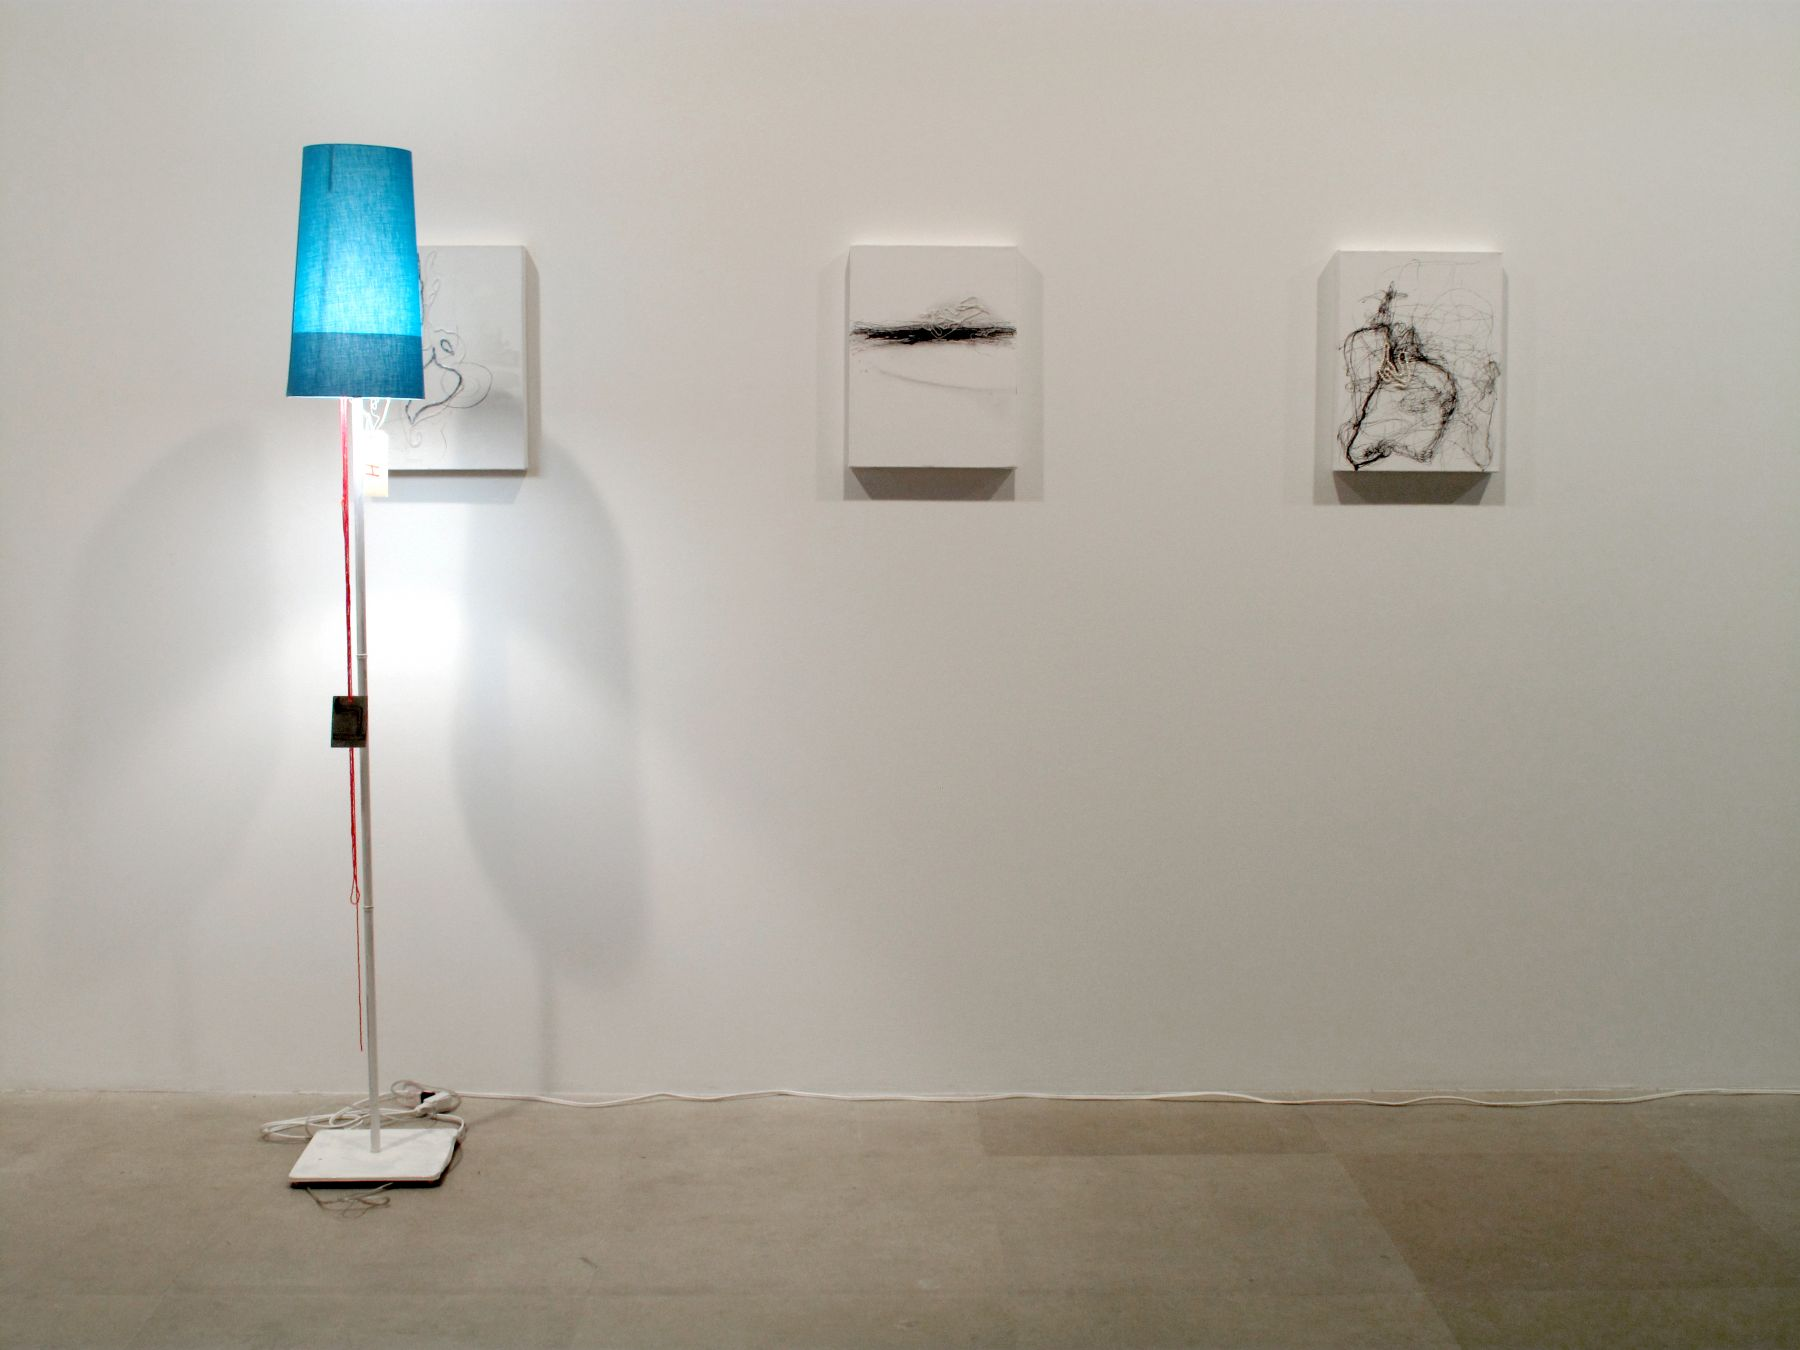 Untitled, 2008, ink, pencil, acrylic, pearls, beads and adhesive on canvas, mixed media lamp, overall dimensions variable, canvases each 15 ¾ x 11 ¾ inches